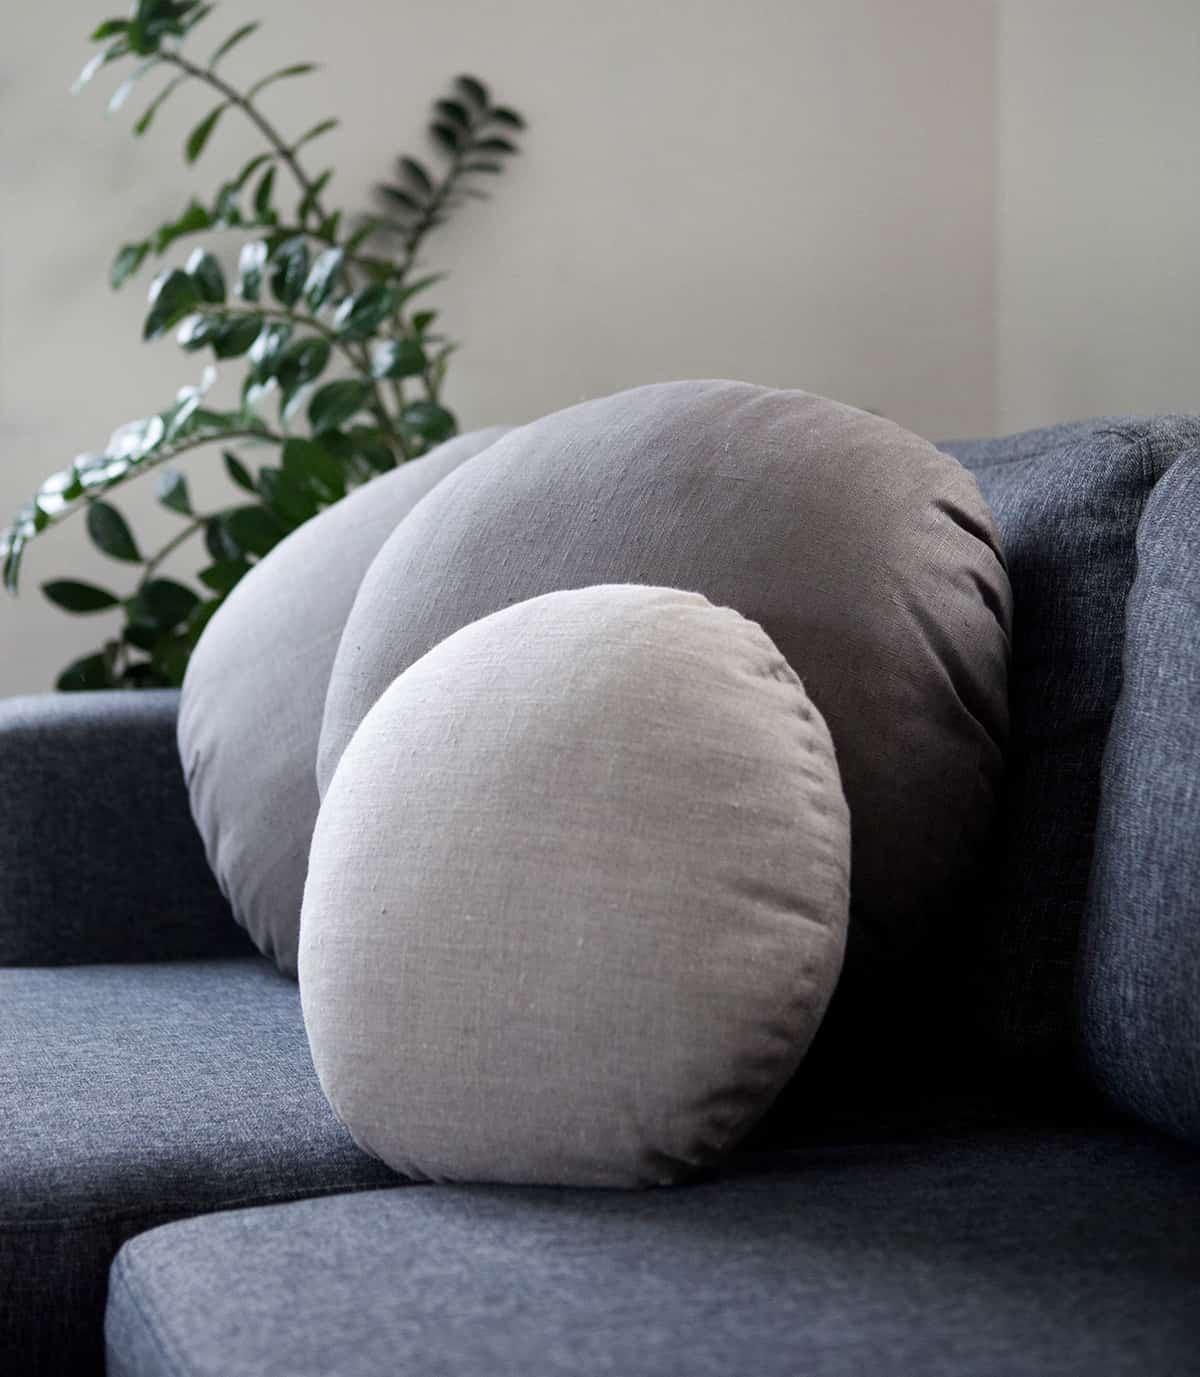 Round-Shaped Pillows